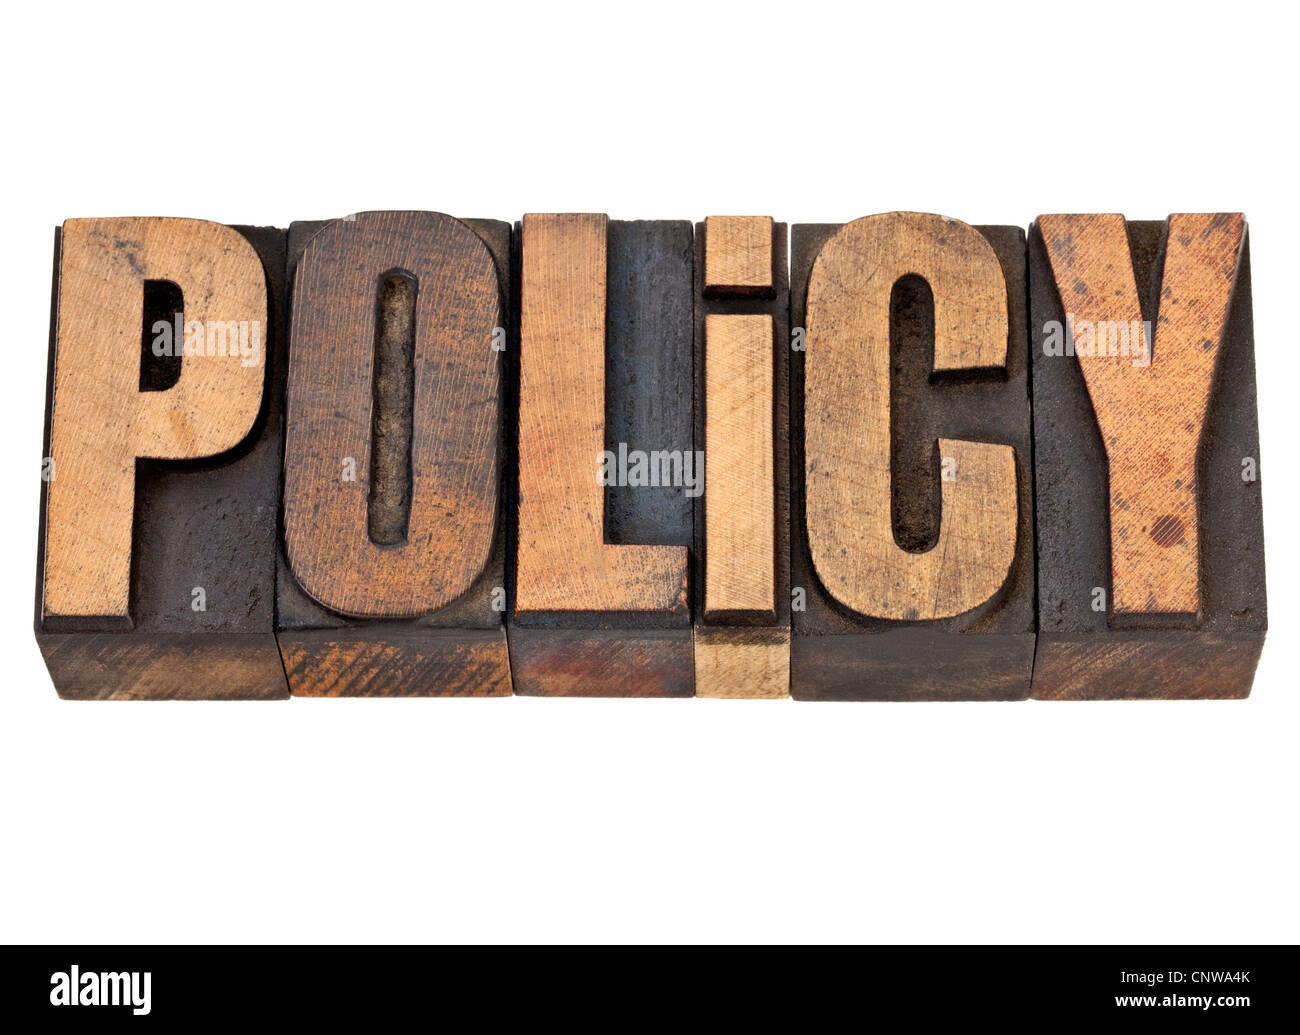 policy - isolated word in vintage letterpress wood type - Stock Image